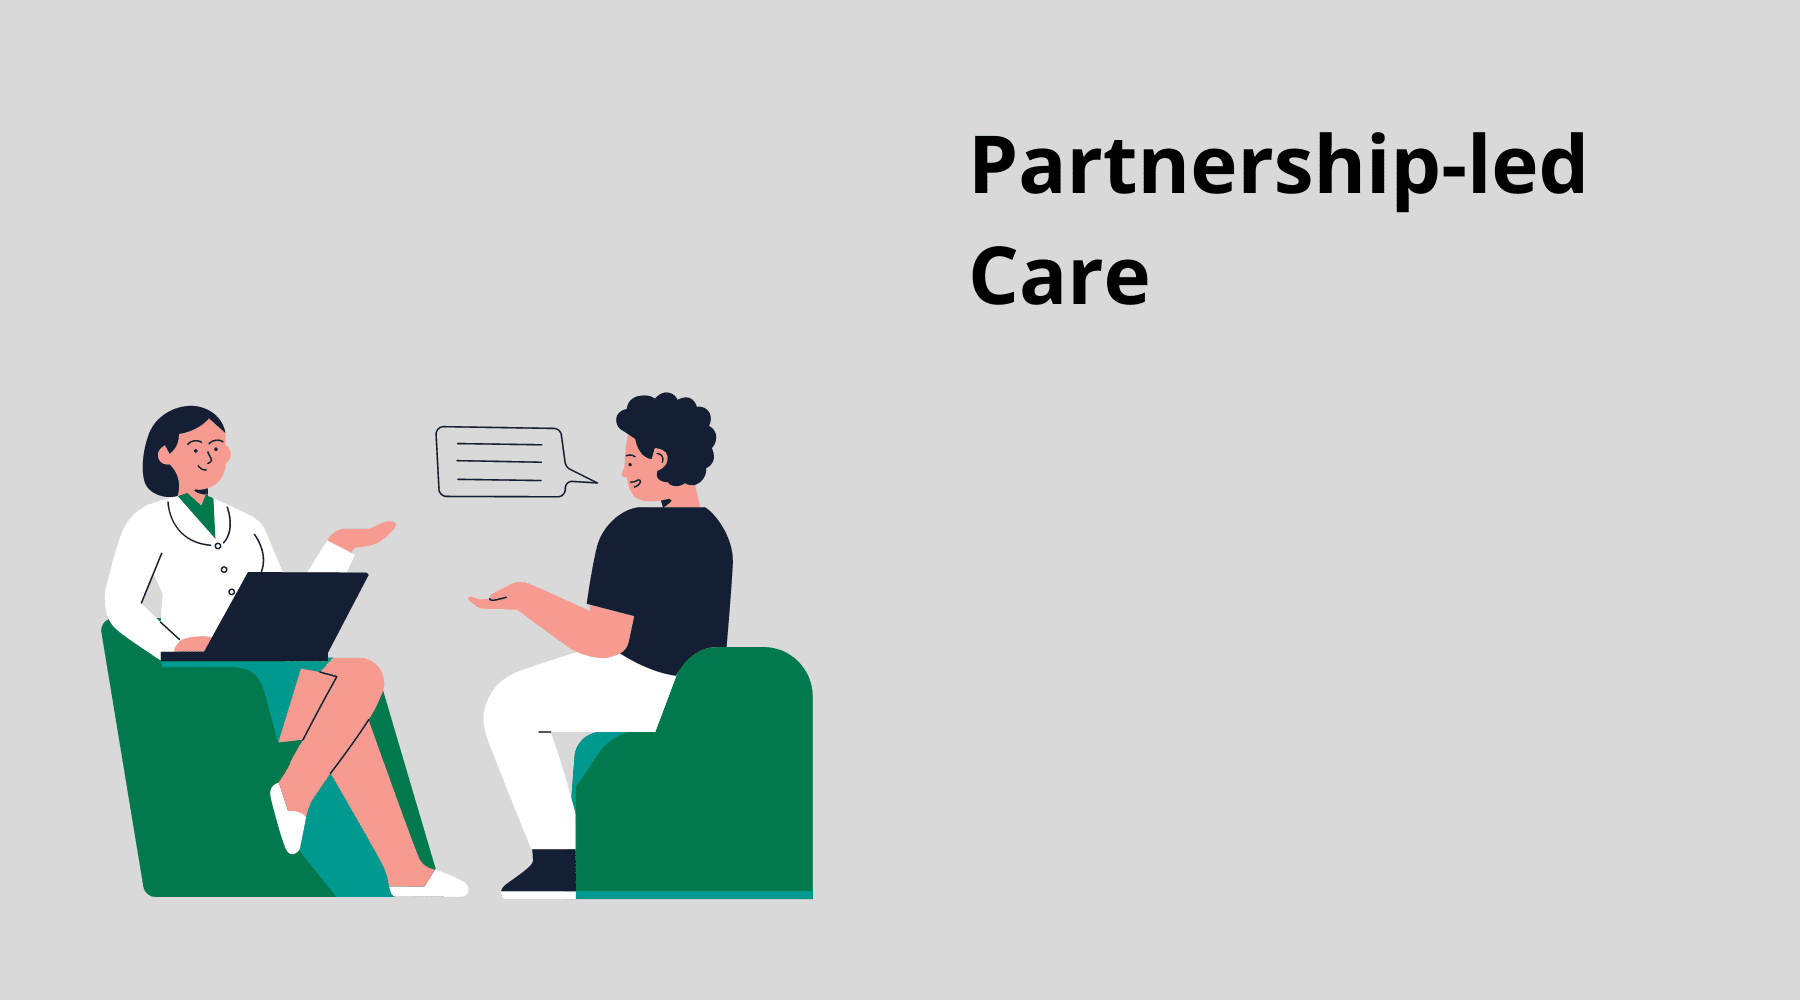 Partnership-led Home Care